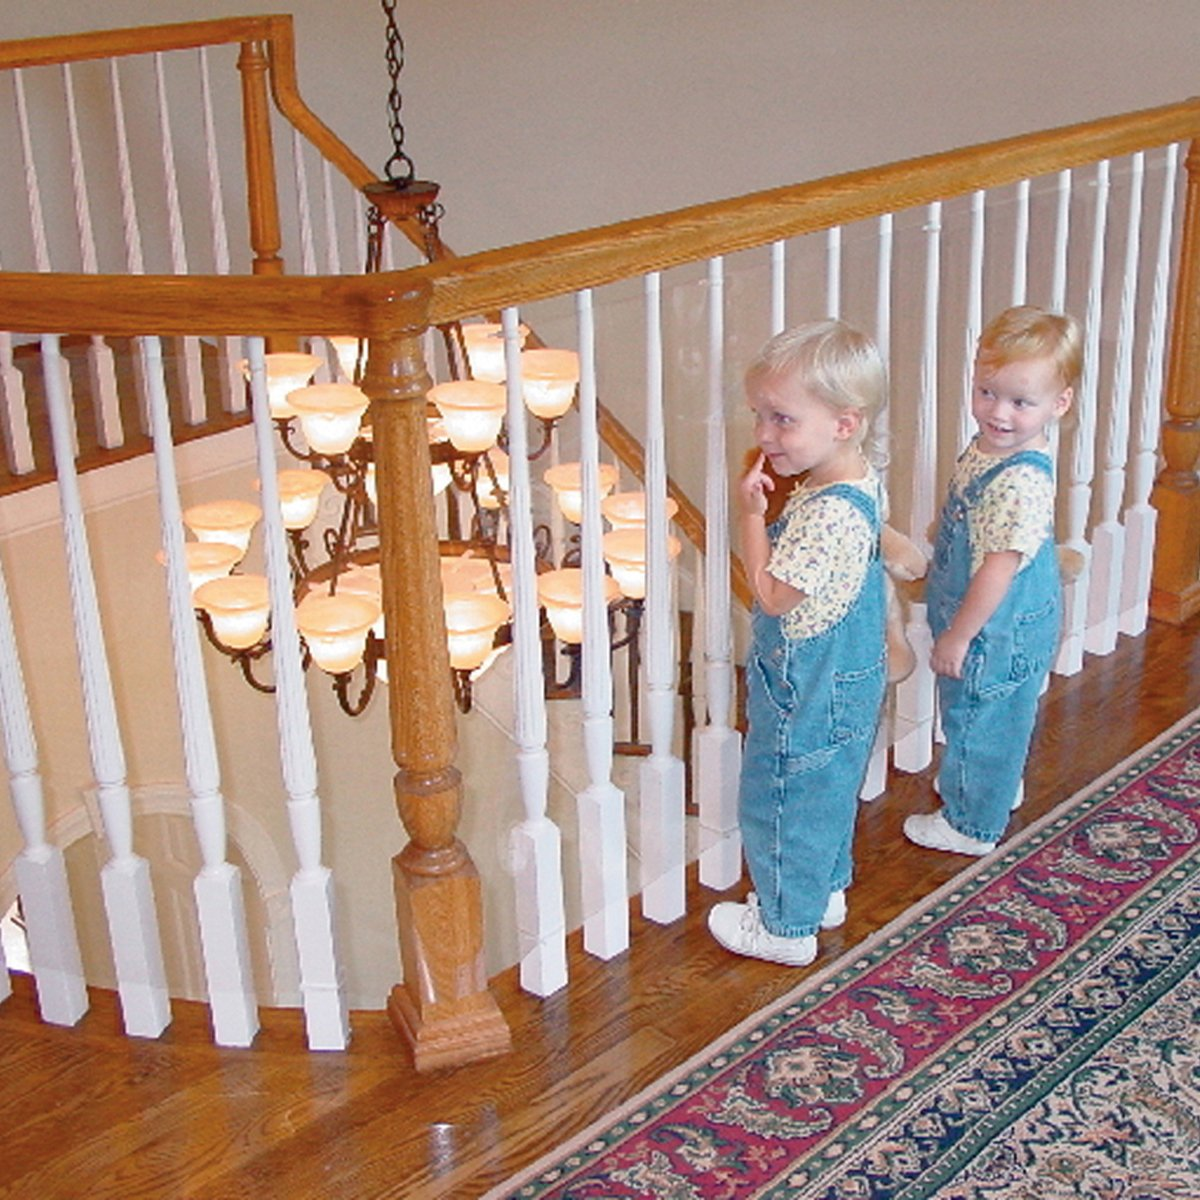 Amazon Com Kidkusion Kid Safe Banister Guard Childrens Home